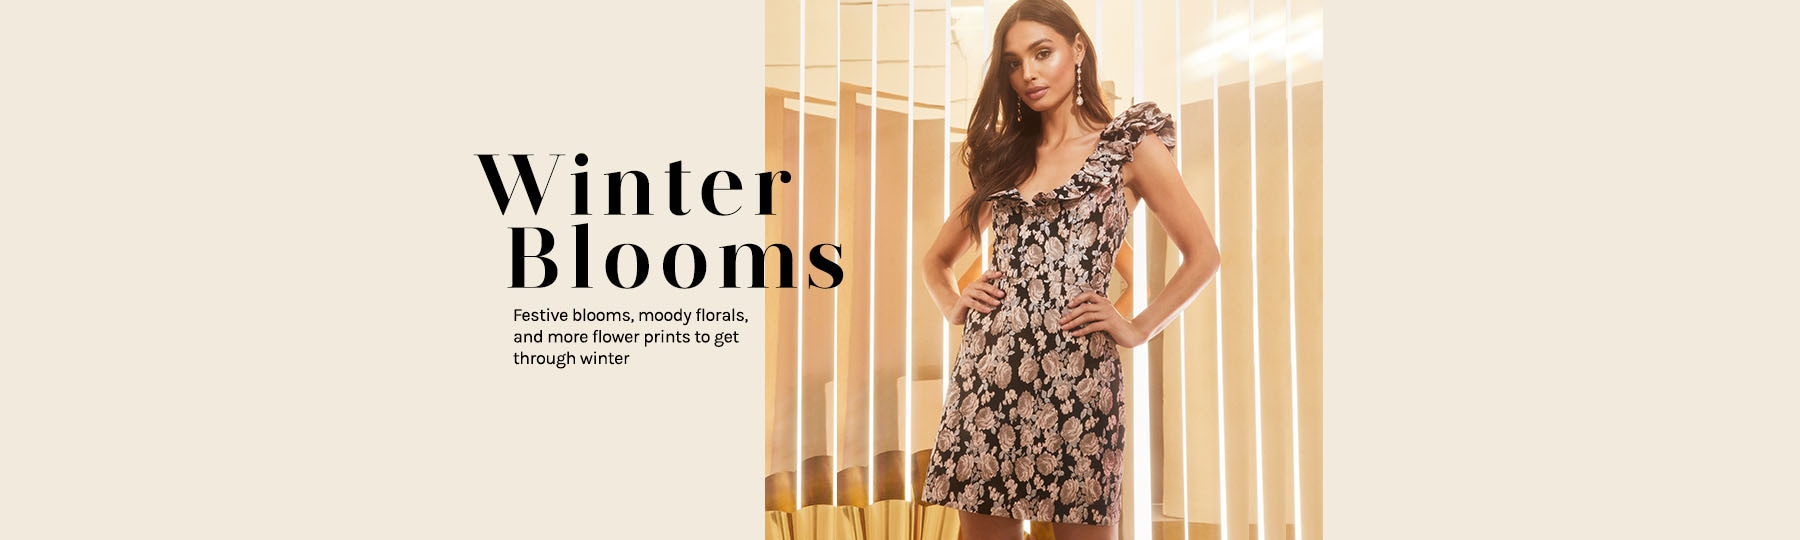 Winter Blooms. Festive blooms, moody florals, and more flower prints to get through winter. Shop The Edit